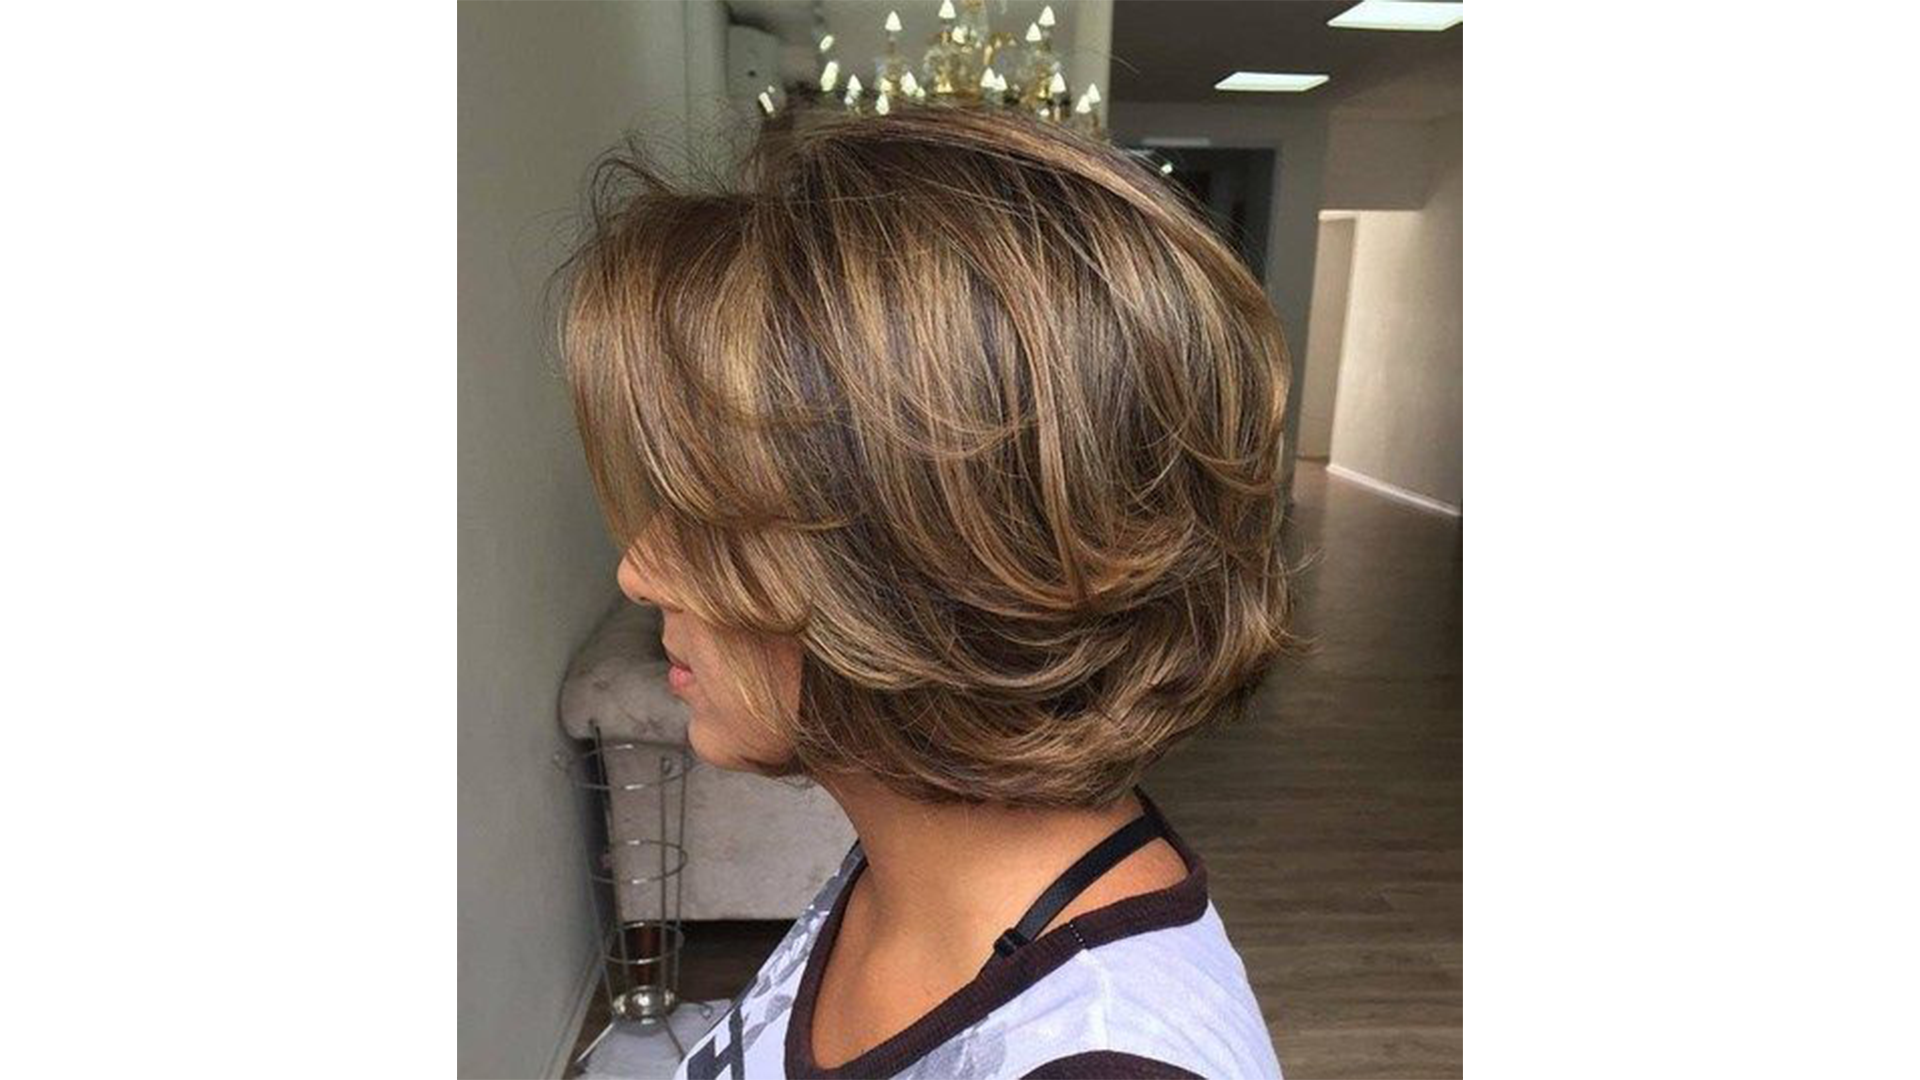 The Best Styles Of 2018 For Short & Thick Hair | Southern Living